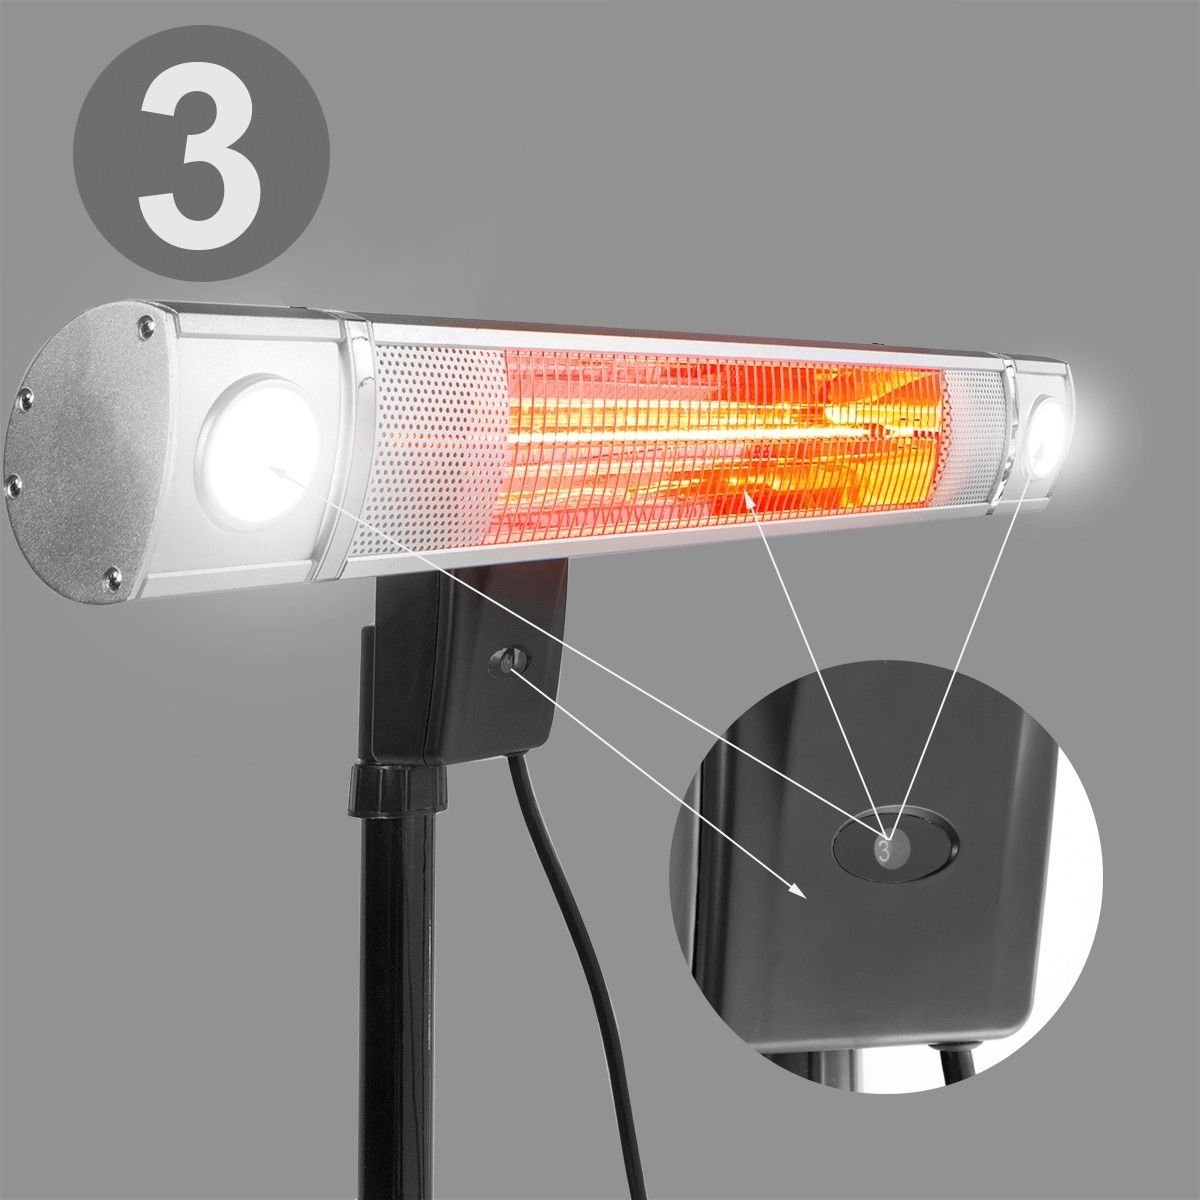 XtremepowerUS Infrared 1500W Electric Patio Heater Wallmount or Freestanding Adjustable Heat/Height with 2 Led Light by XtremepowerUS